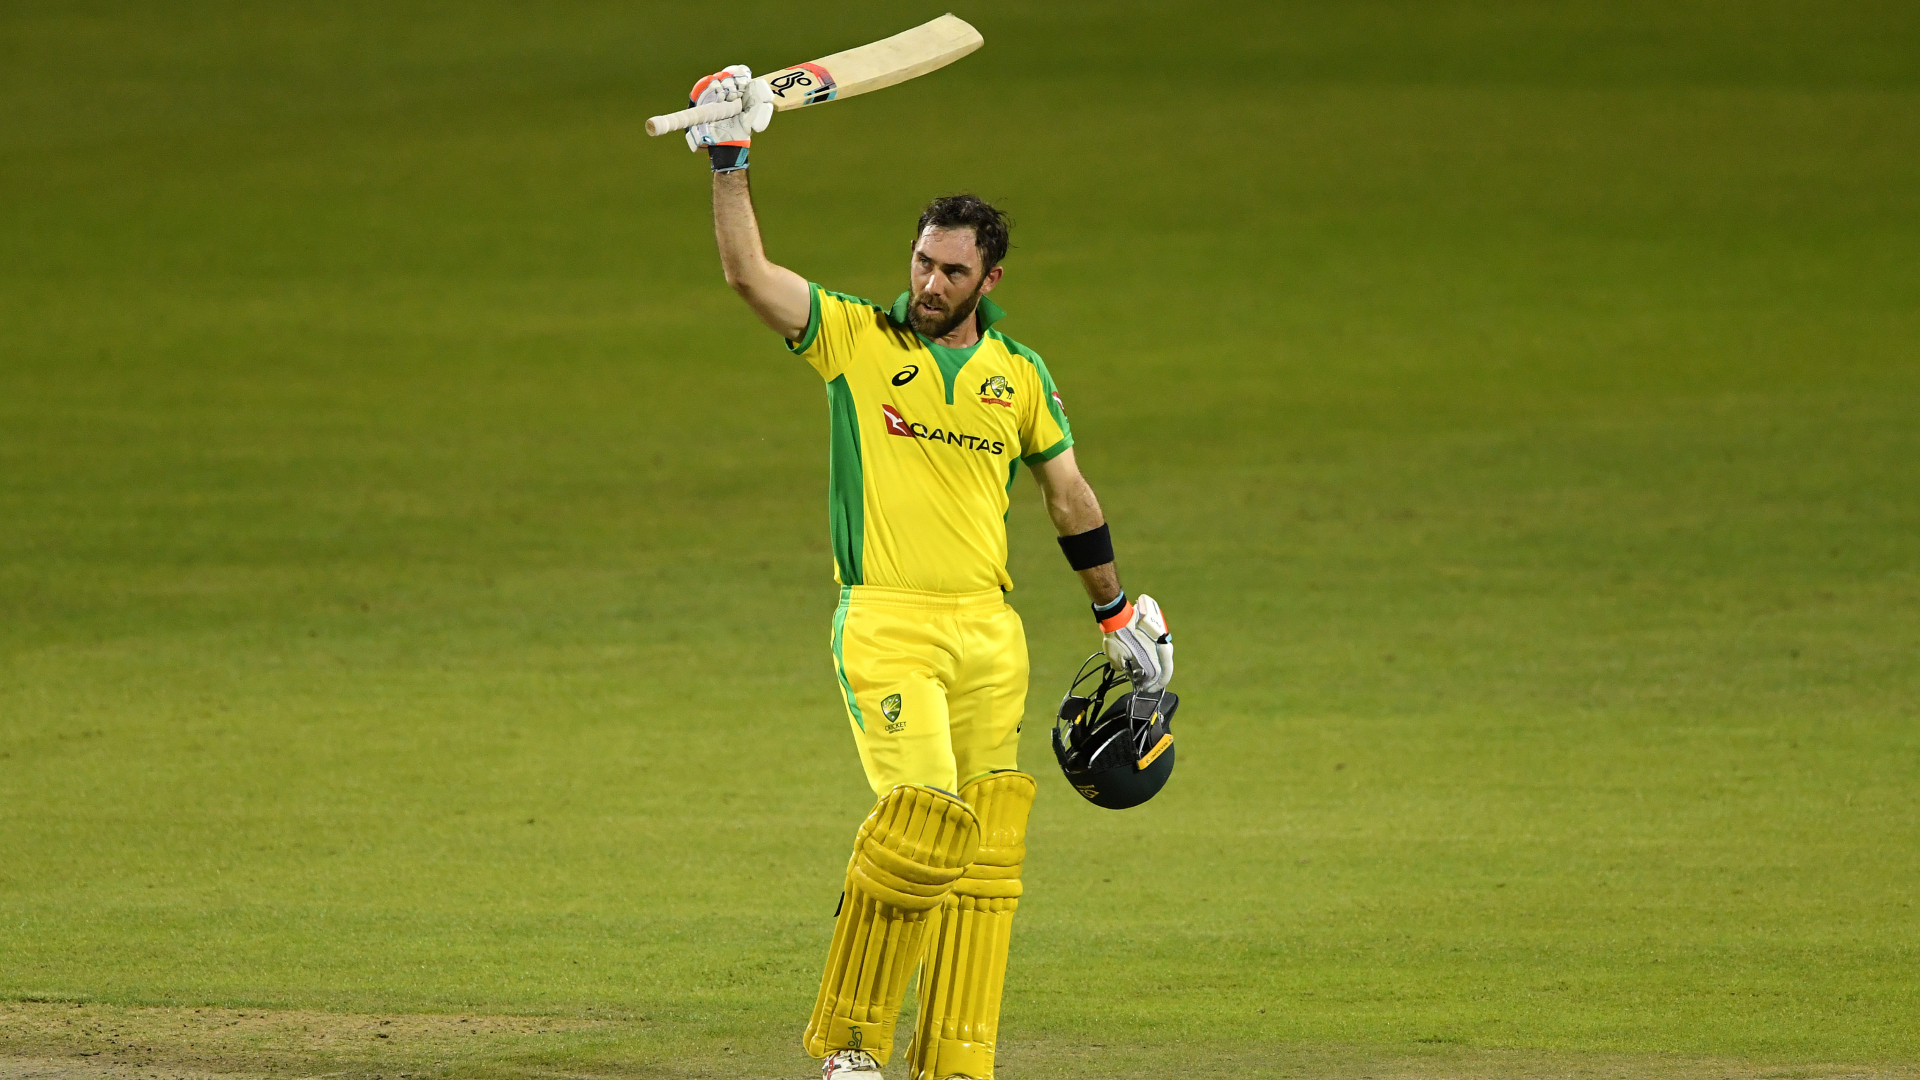 Maxwell had 'freedom' in match-winning innings against England